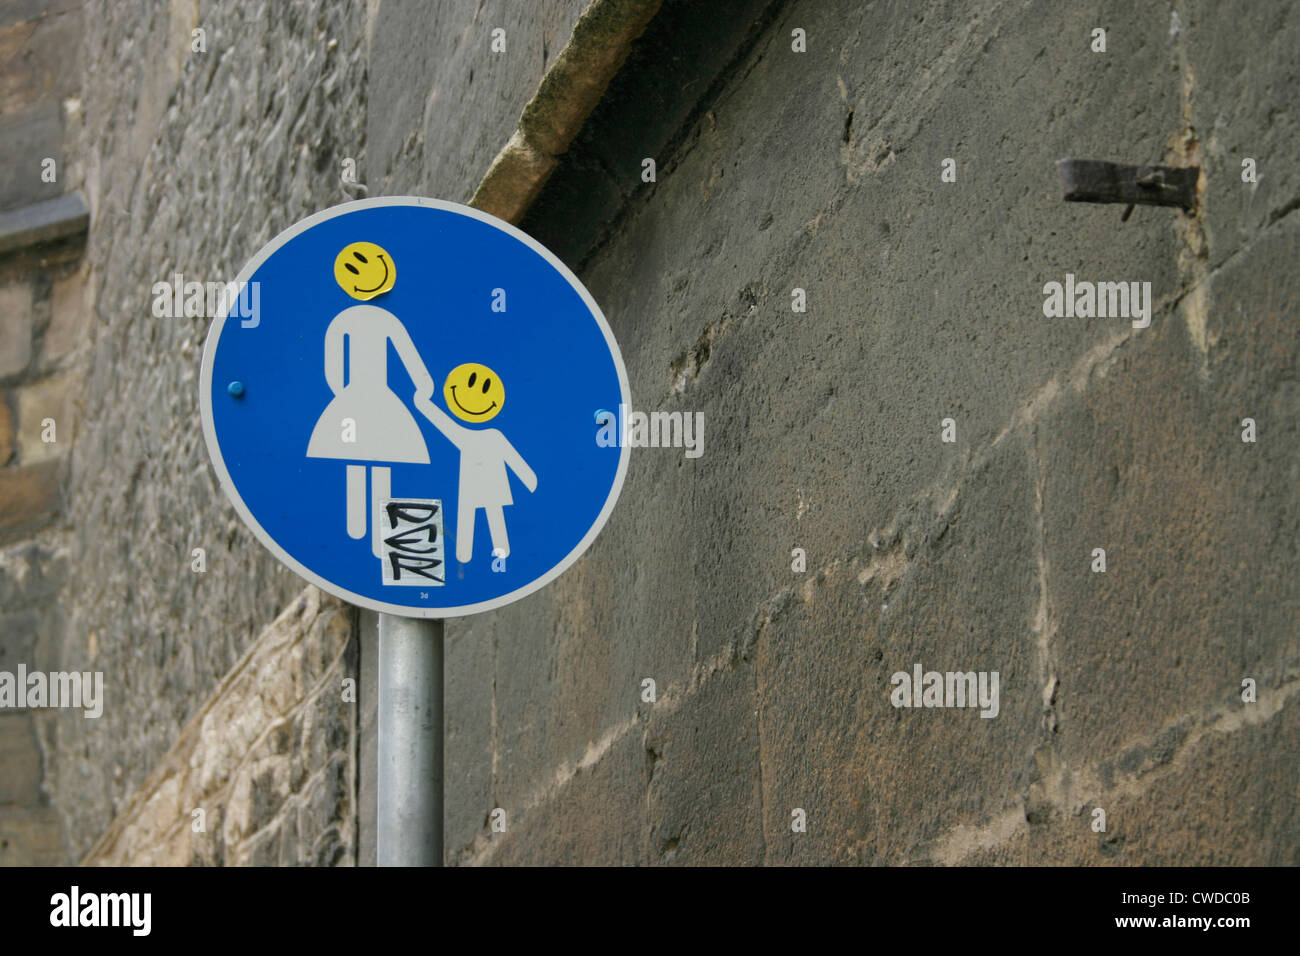 traffic sign,smiley,stickers - Stock Image